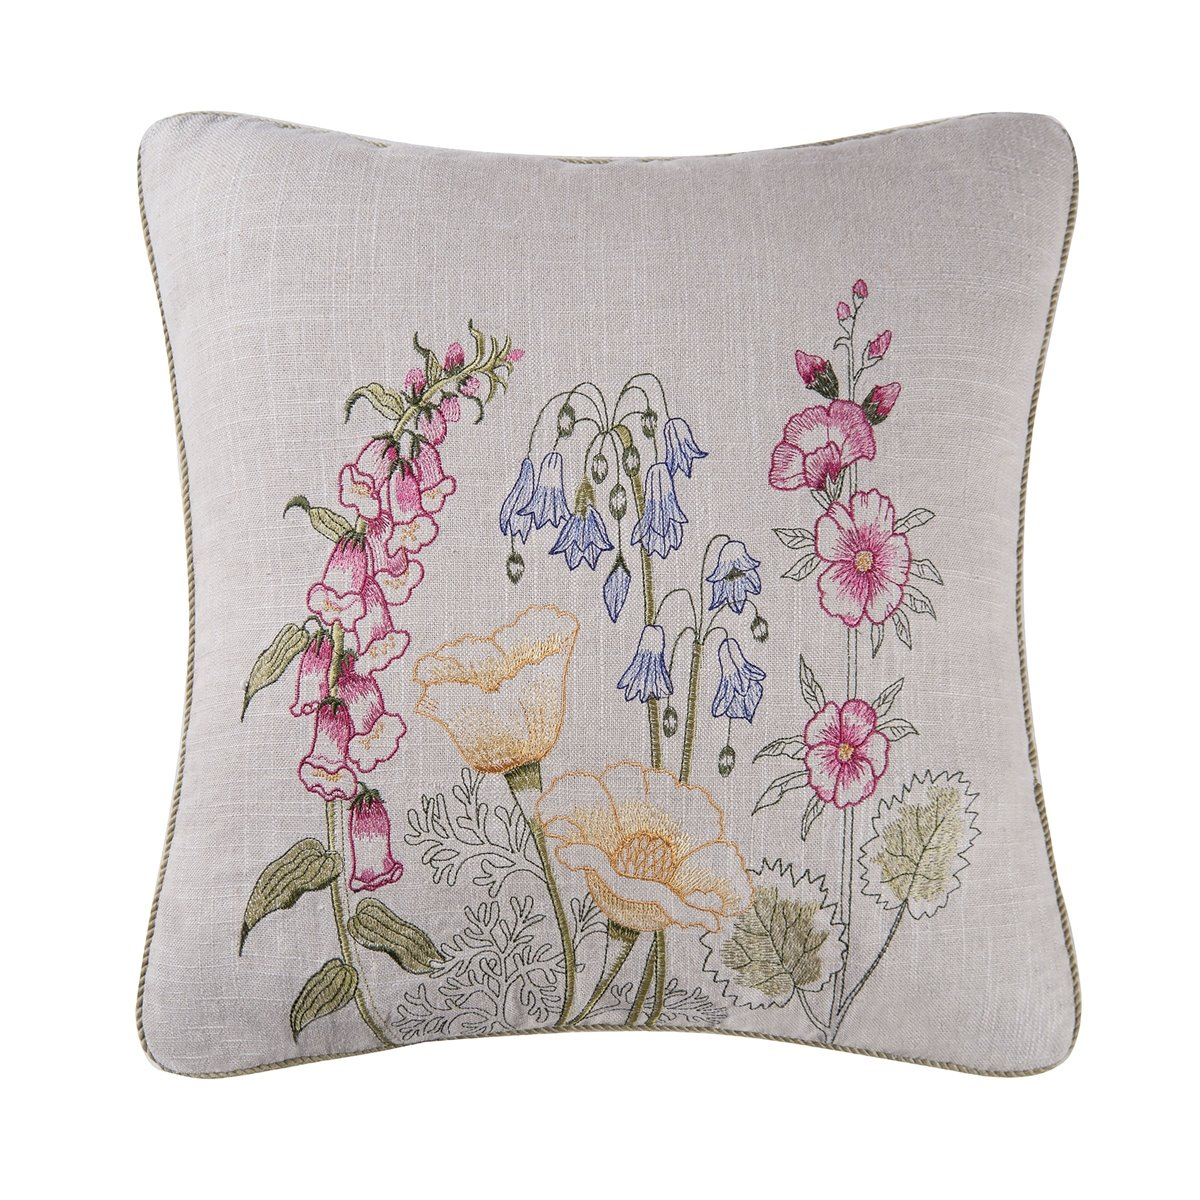 Jeanette Embroidered Pillow with yellow poppies